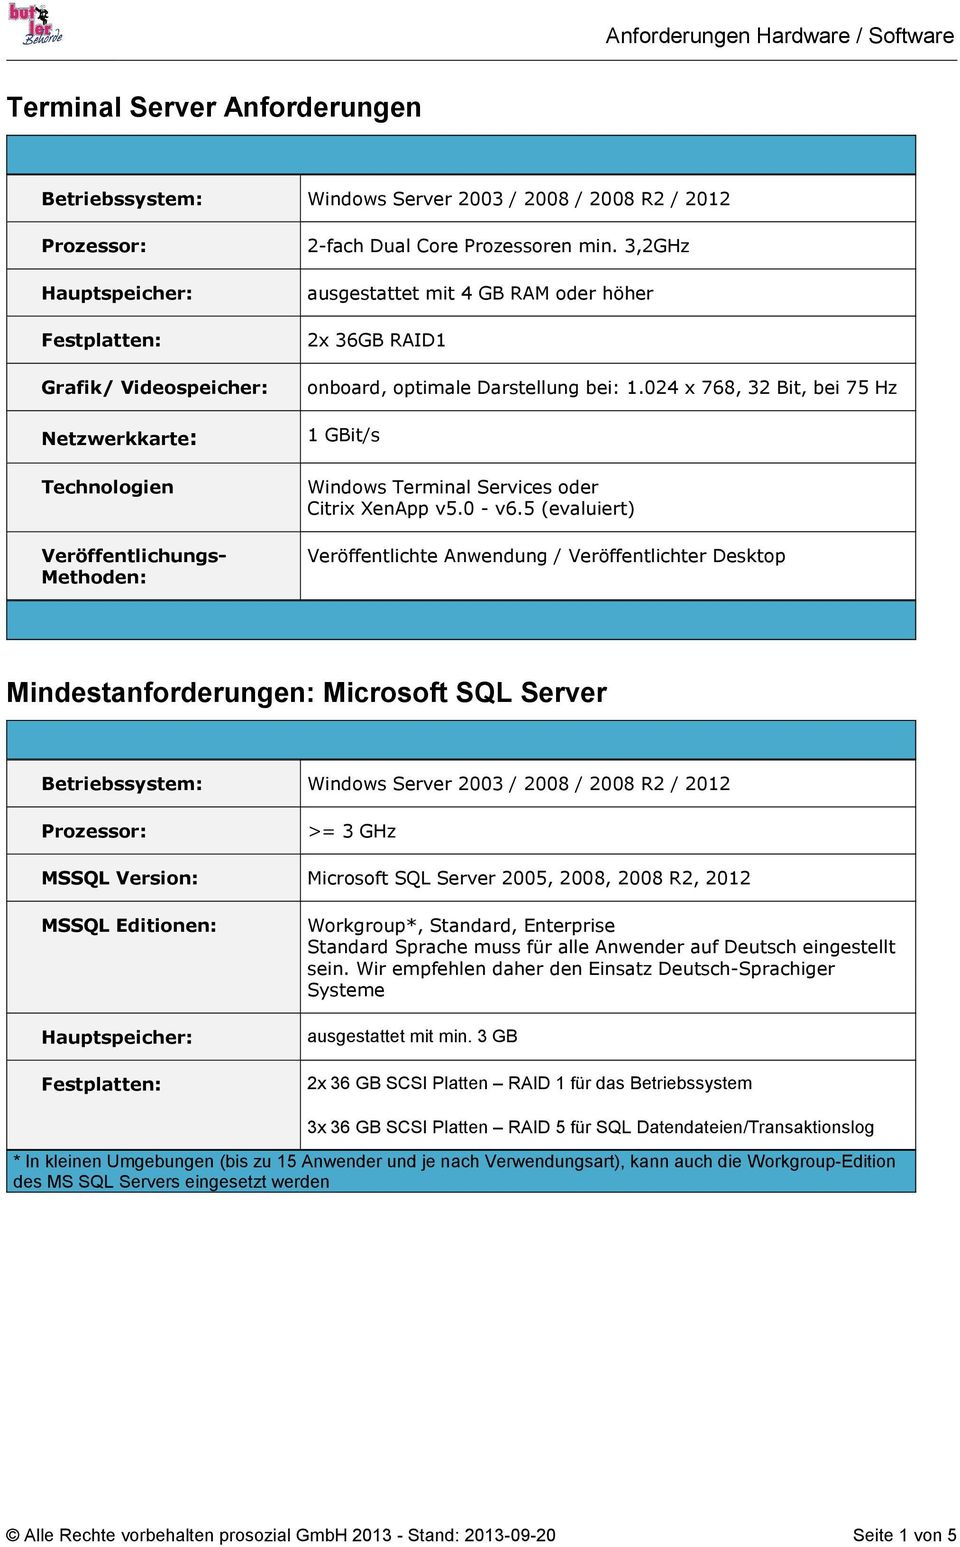 5 (evaluiert) Veröffentlichte Anwendung / Veröffentlichter Desktop Mindestanforderungen: Microsoft SQL Server Betriebssystem: Windows Server 2003 / 2008 / 2008 R2 / 2012 >= 3 GHz MSSQL Version: